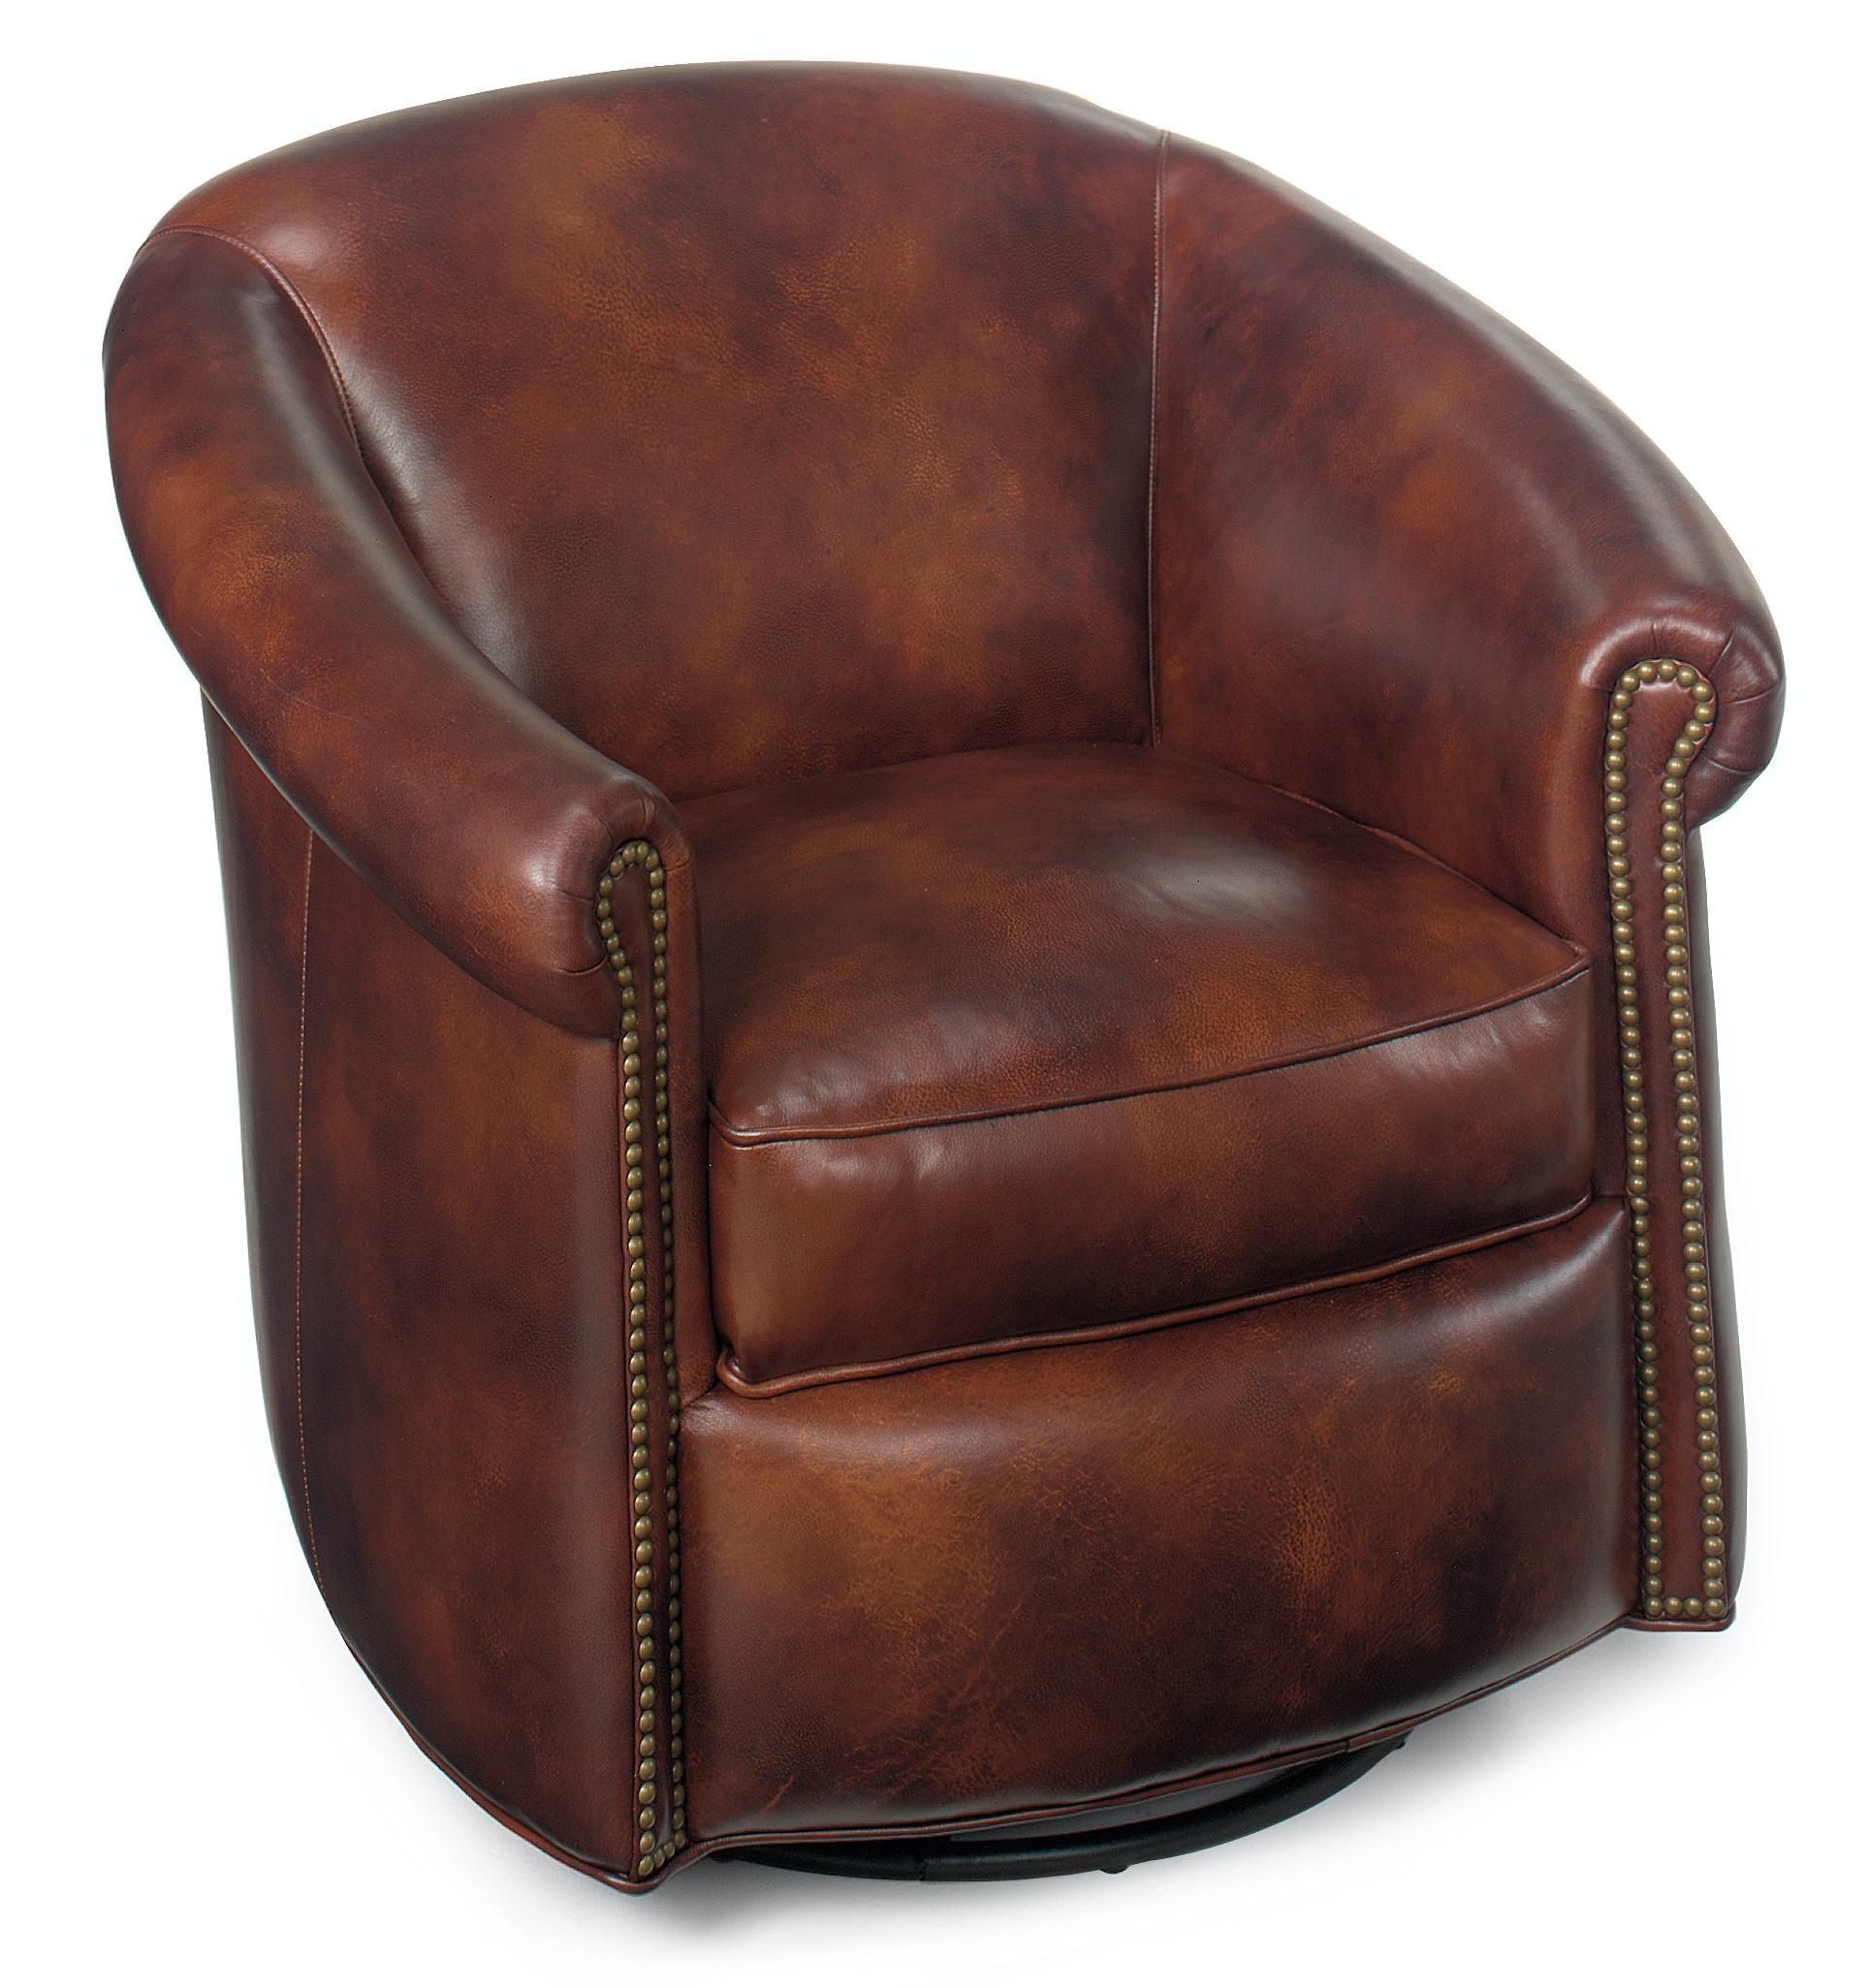 Swivel Tub Chair Bradington Young Living Room Marietta Swivel Tub Chair